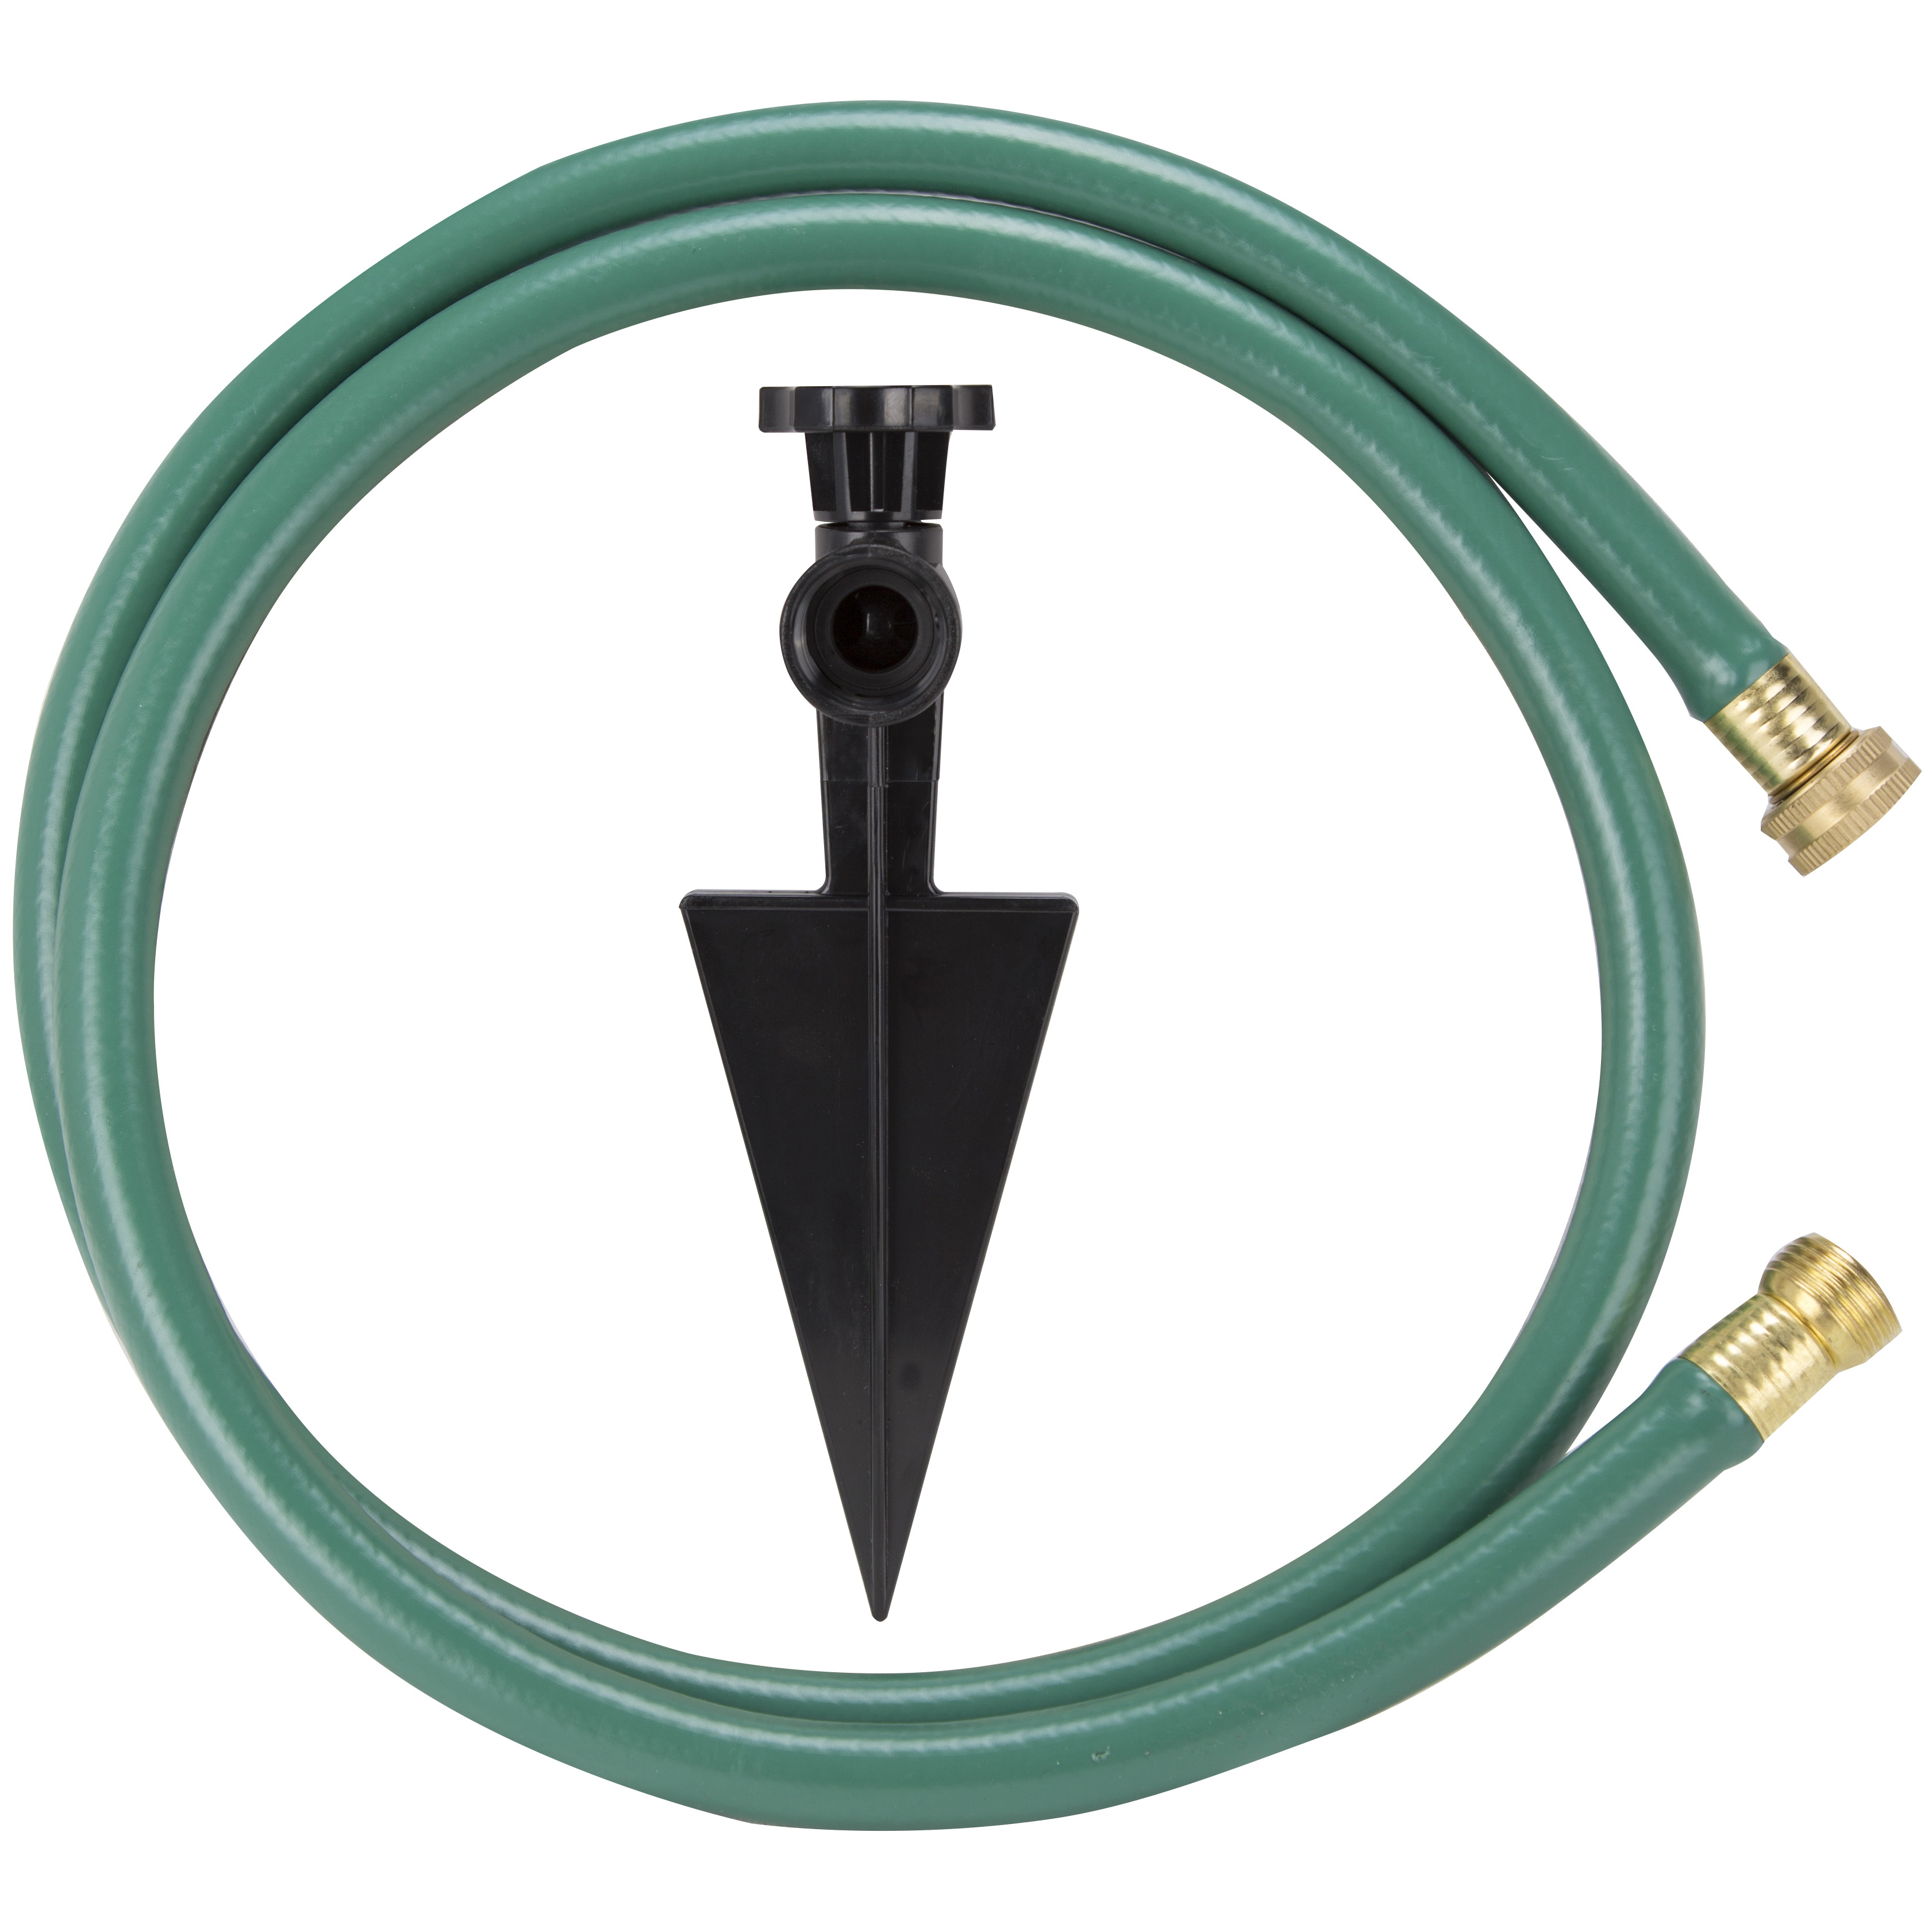 Picture of Landscapers Select 6GHWF Garden Hose Extender, 6 ft L, Female x Male, PVC, Green